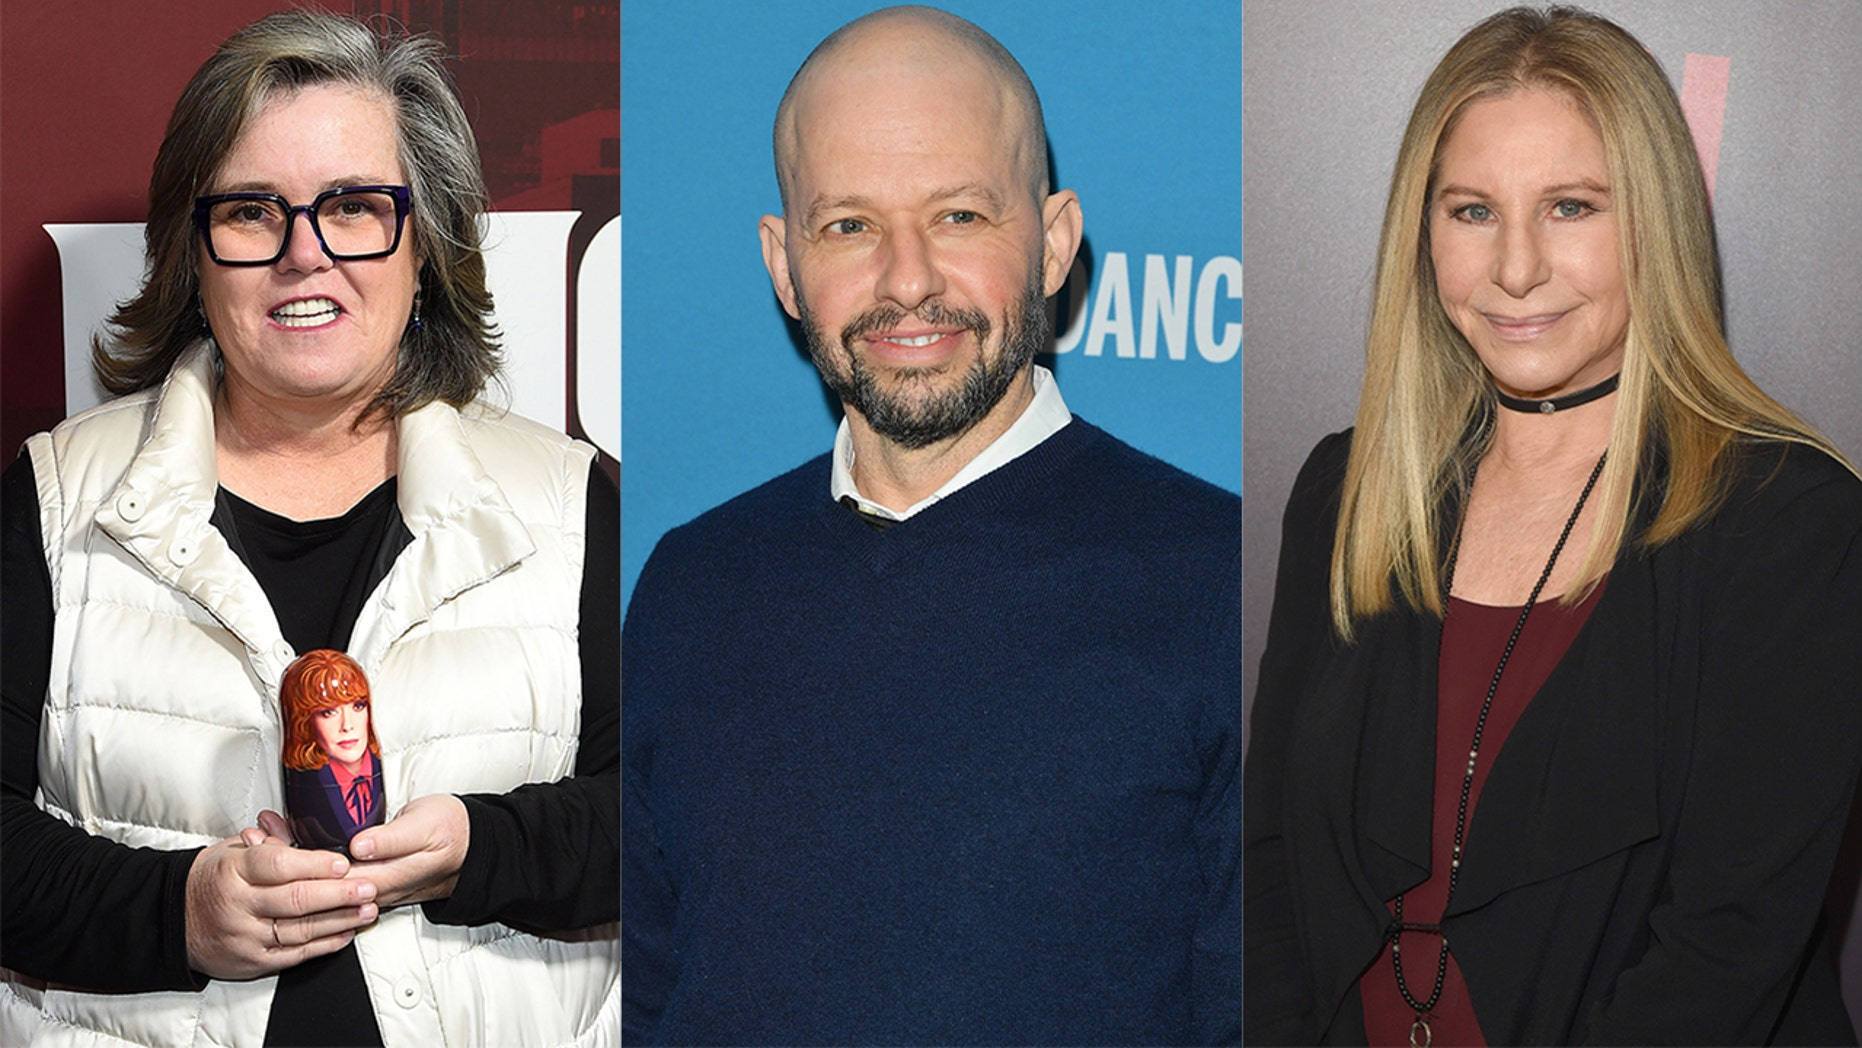 Celebrities like Rosie O'Donnell, Jon Cryer and Barbra Streisand were among the celebrities commenting on Donald Trump's national emergency declaration.